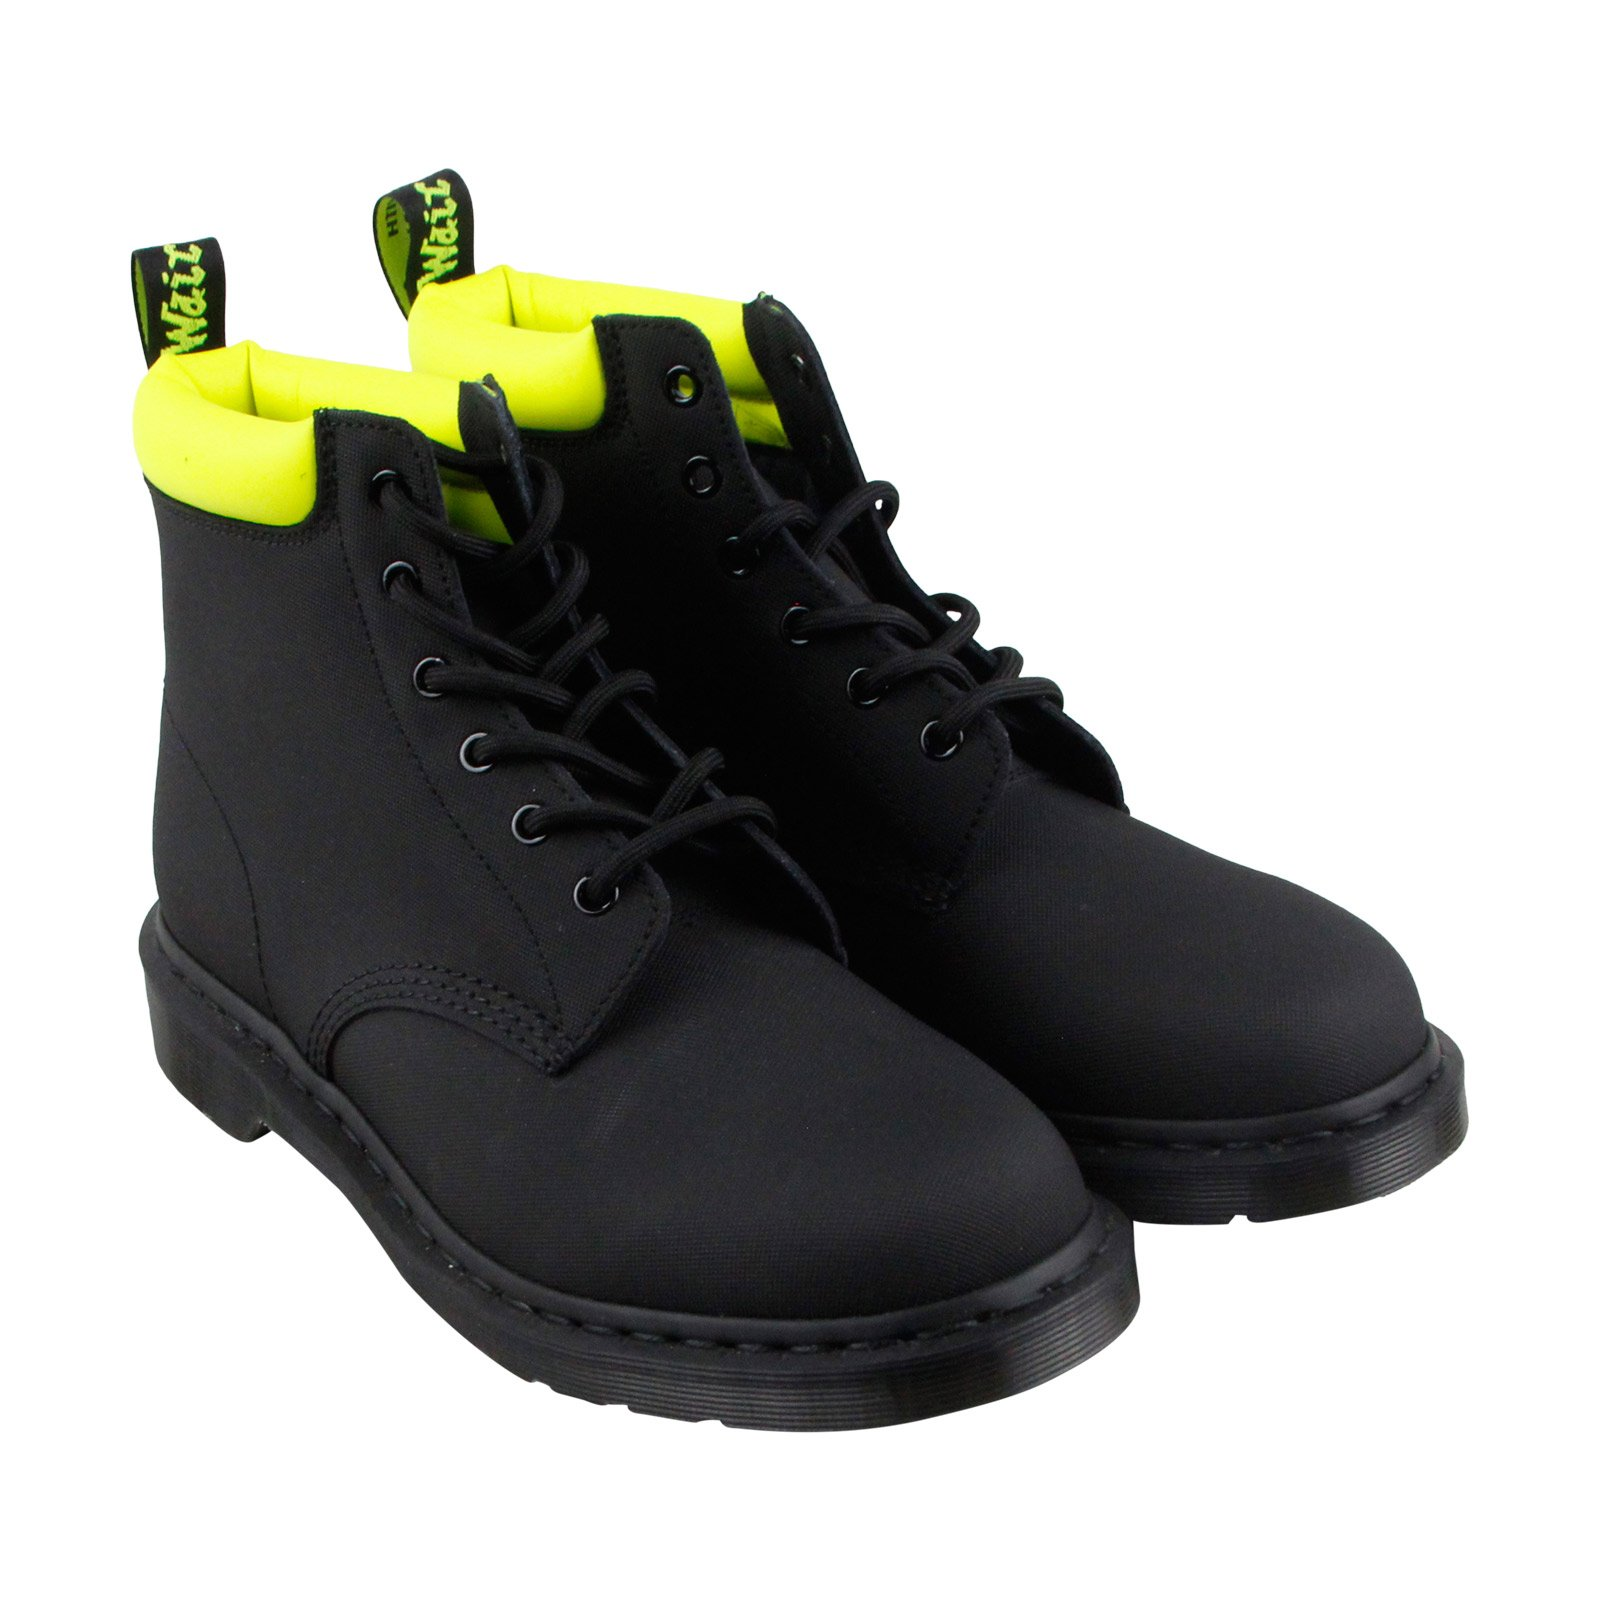 Dr. Martens  Men's 939 6-Eye Boot Black Ajax/Neon Yellow Pu Boot, Size 7 by Dr. Martens